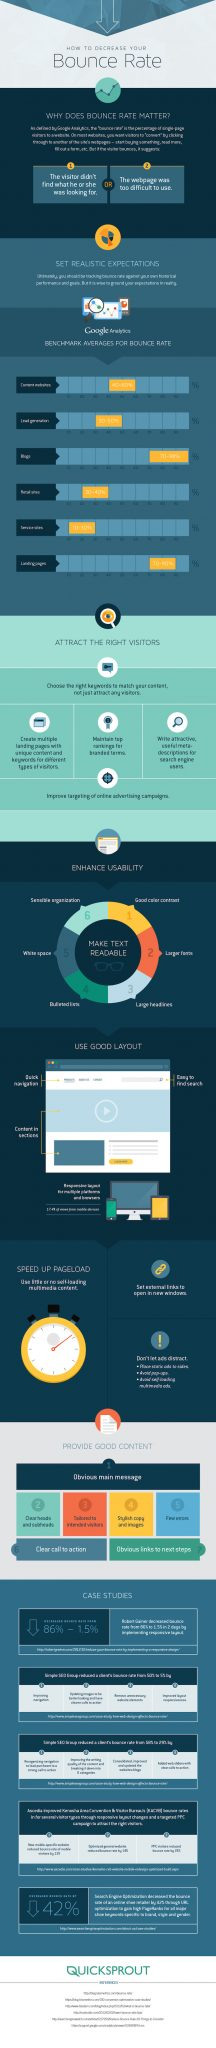 an infographic over bounce rate elements and tips on how to decrease bounce rate